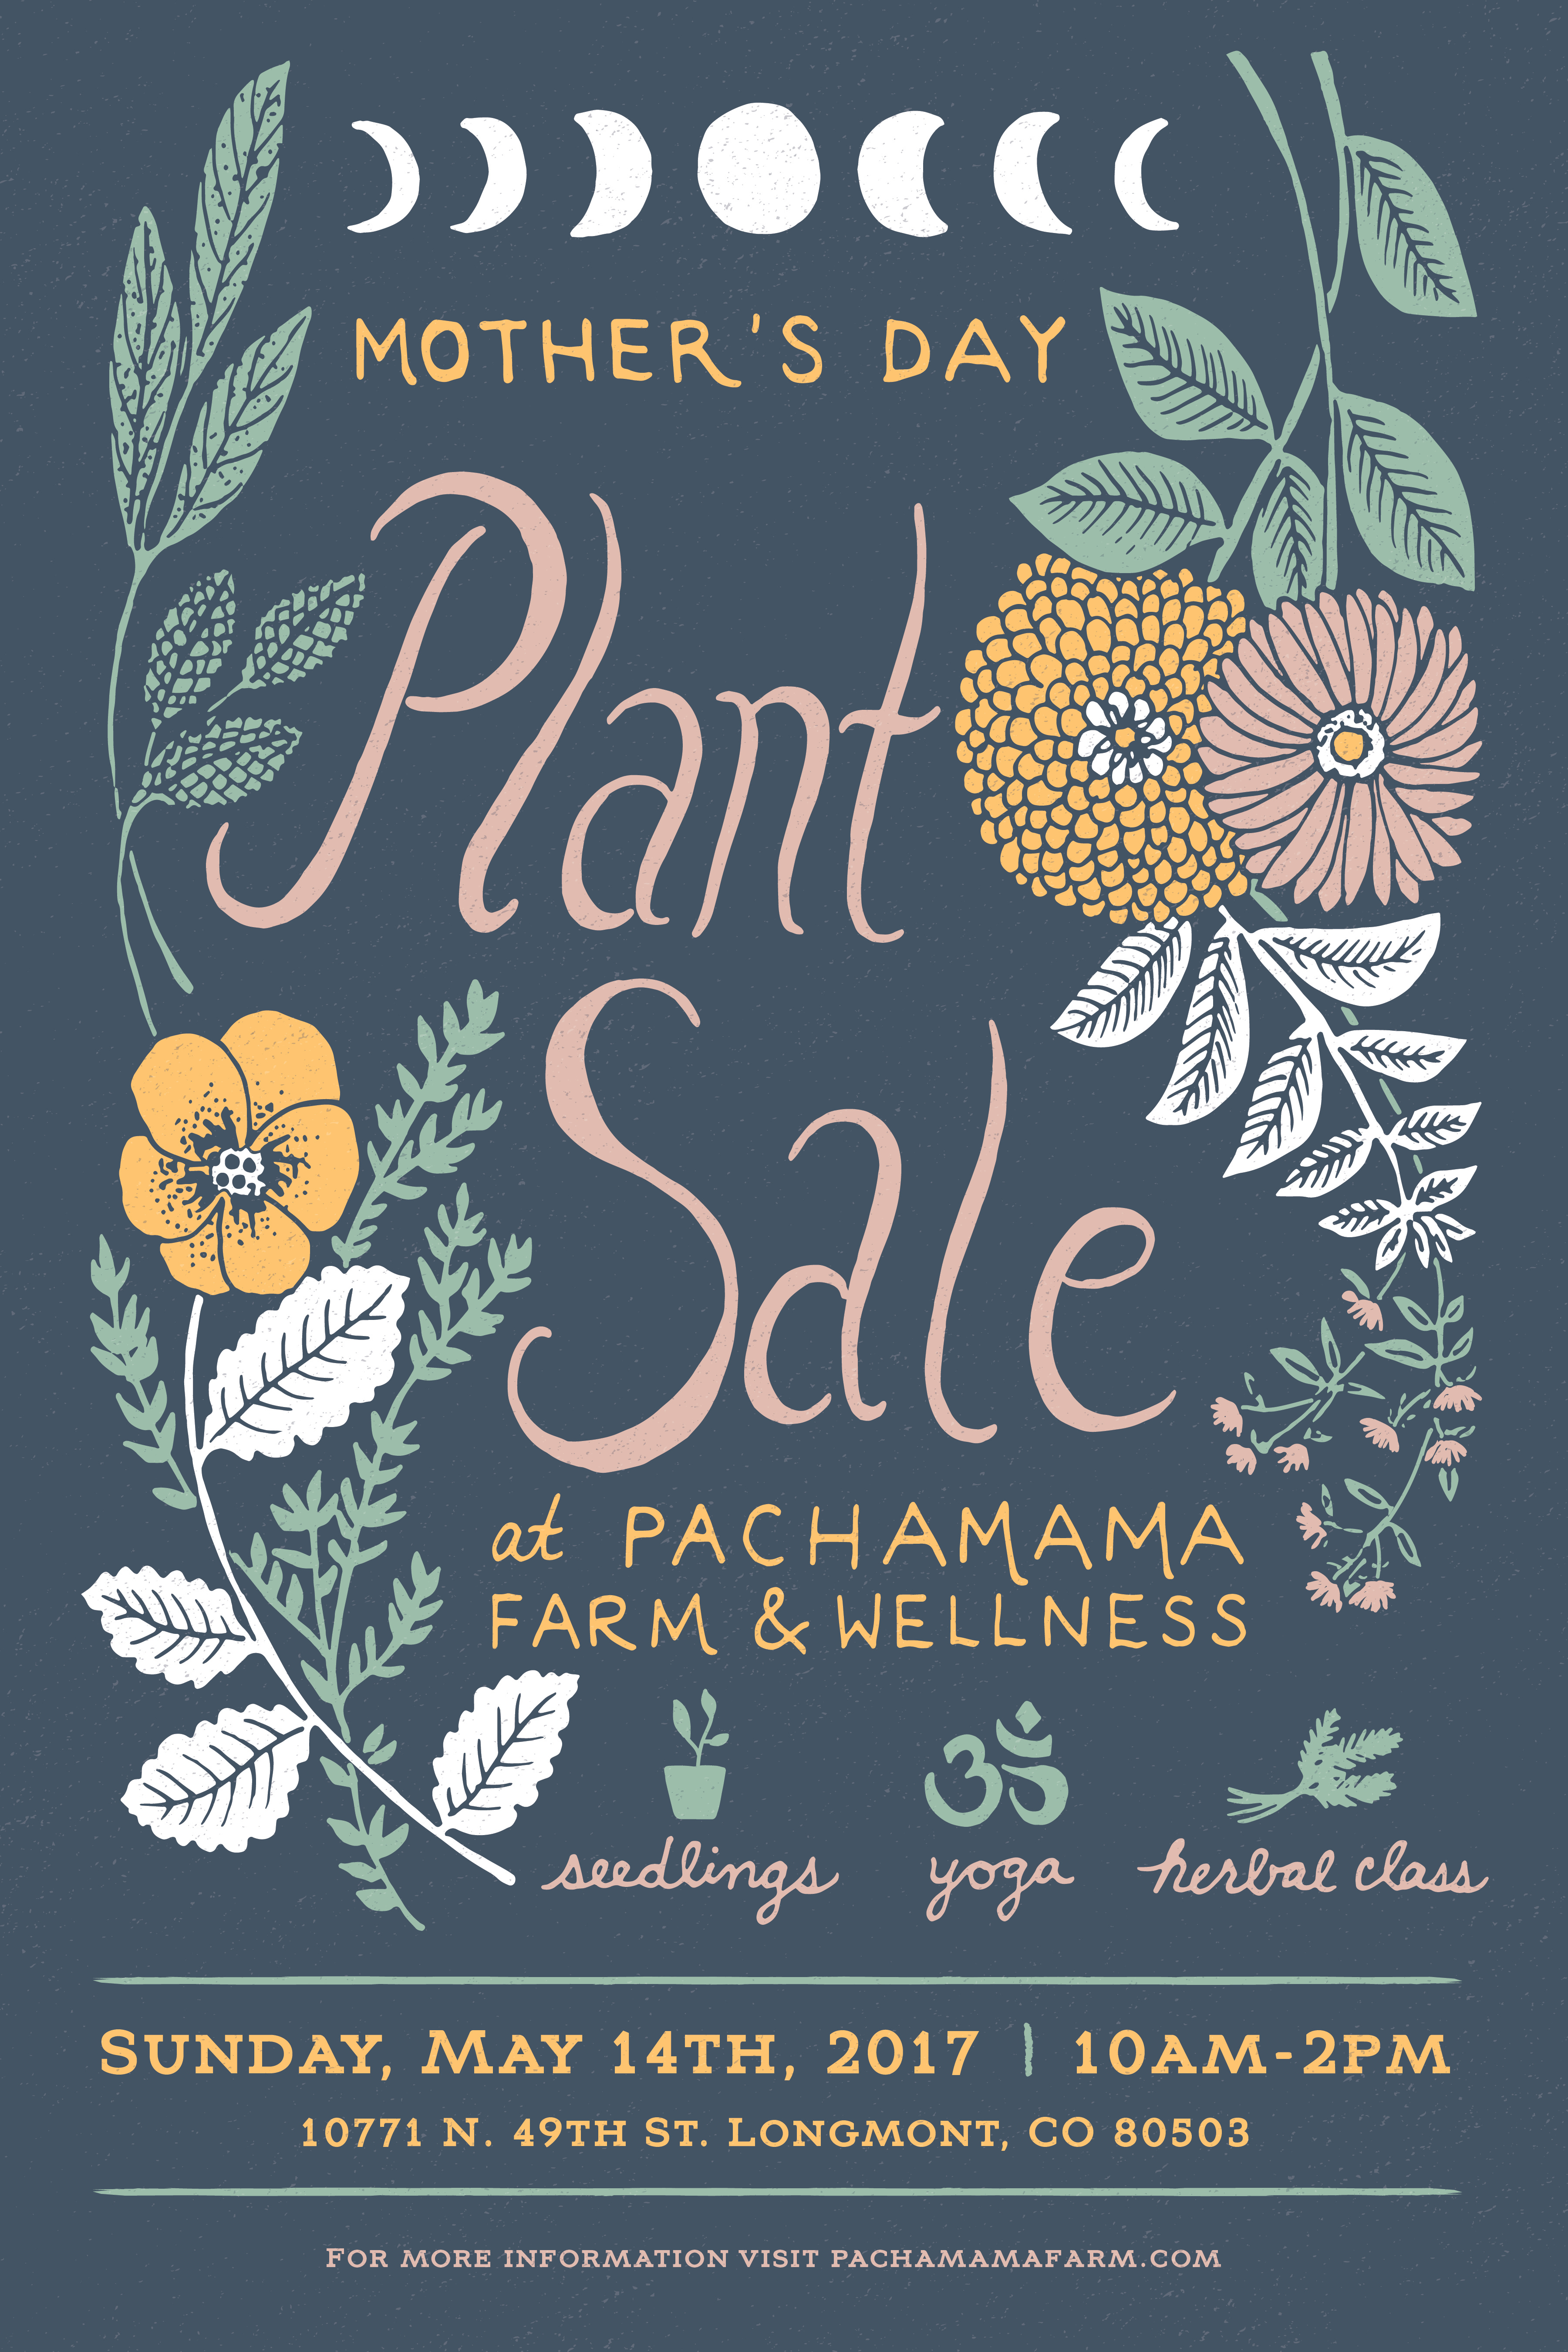 Pachamama Plant Sale Poster 2